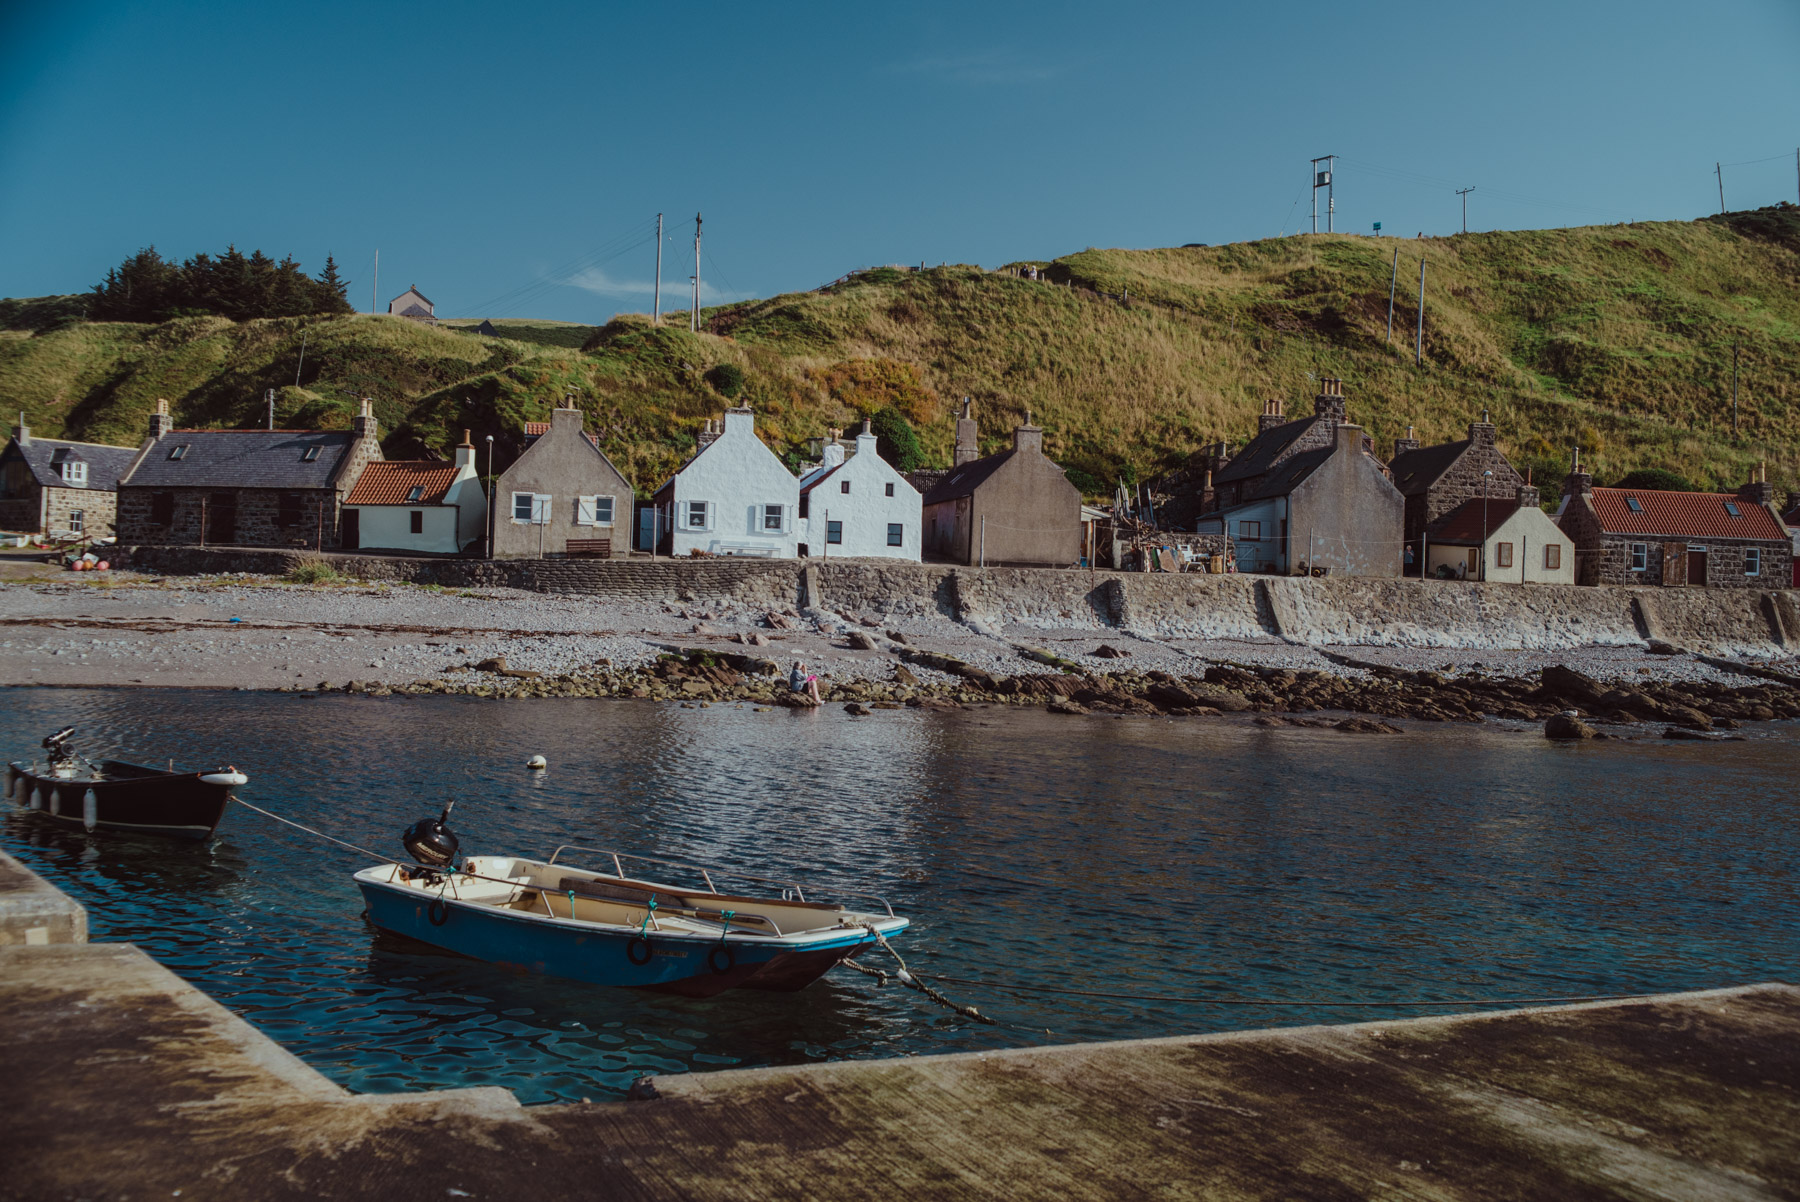 A small boat hangs in the water in the little harbour of Crovia, a small village in Scotland, una piccola barca si trova nel porticciolo del villaggio di Crovie in Scozia